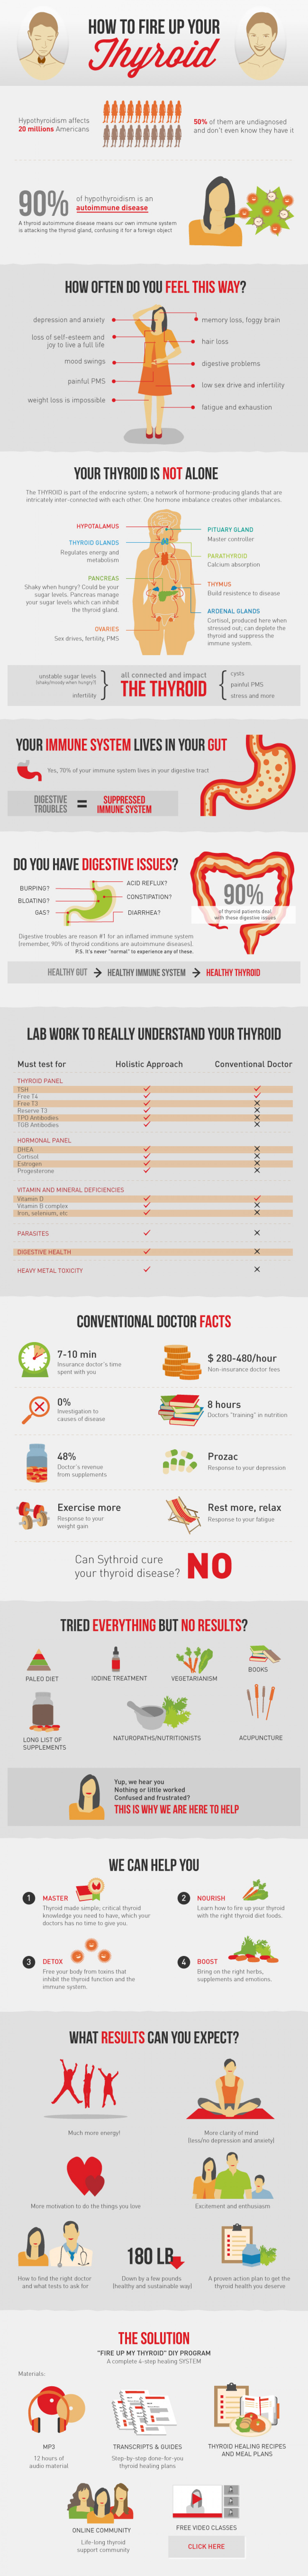 Thyroid Healing Program Infographic